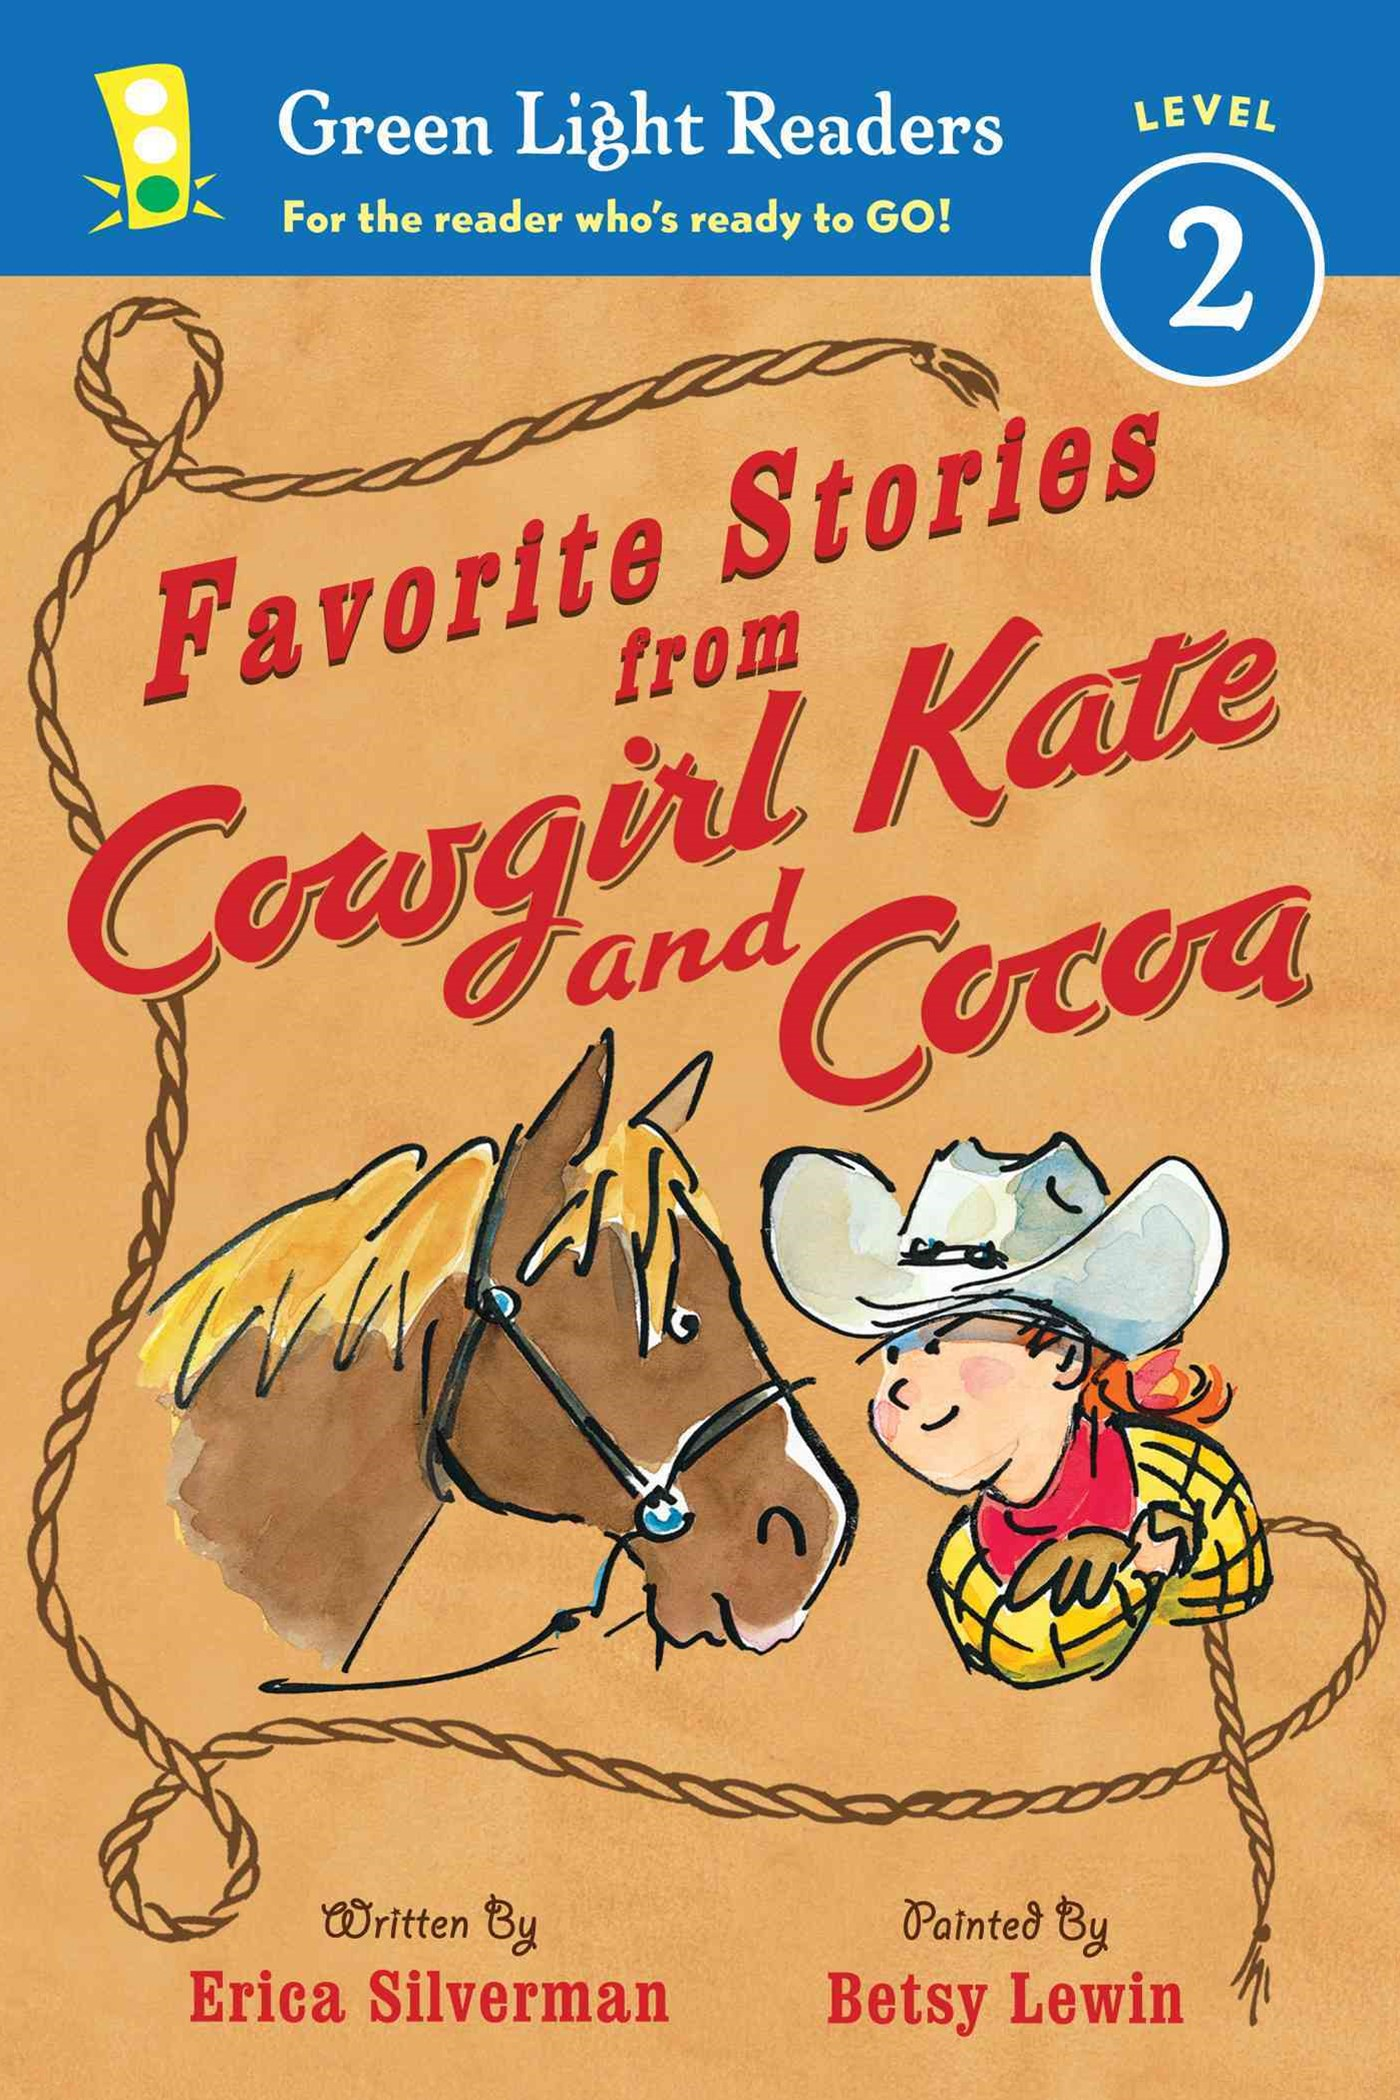 Favorite Stories from Cowgirl Kate and Cocoa GLR L2